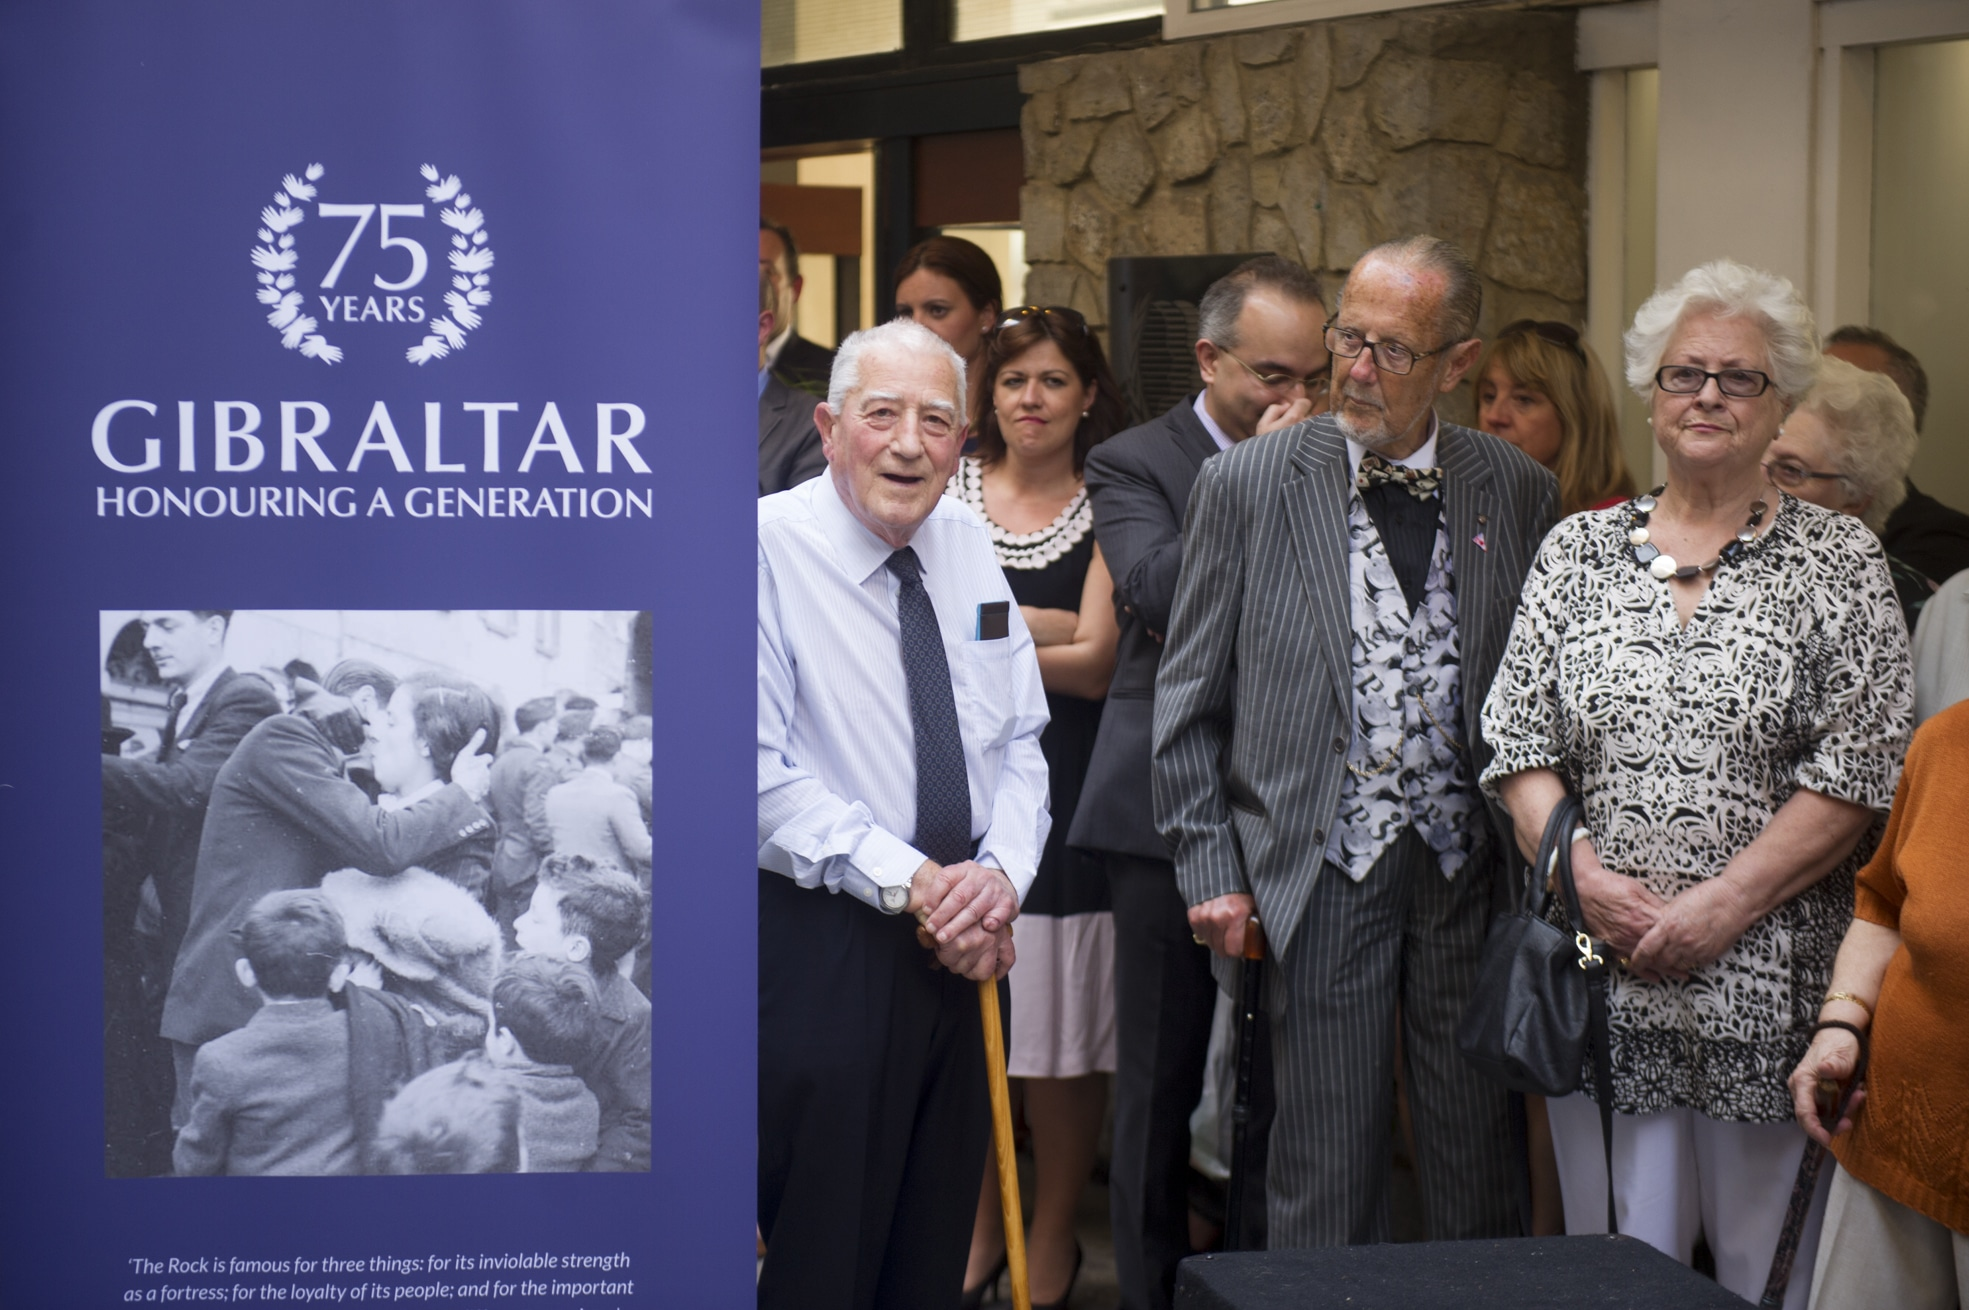 75-years-gibraltar-honouring-generation-35_17560729205_o